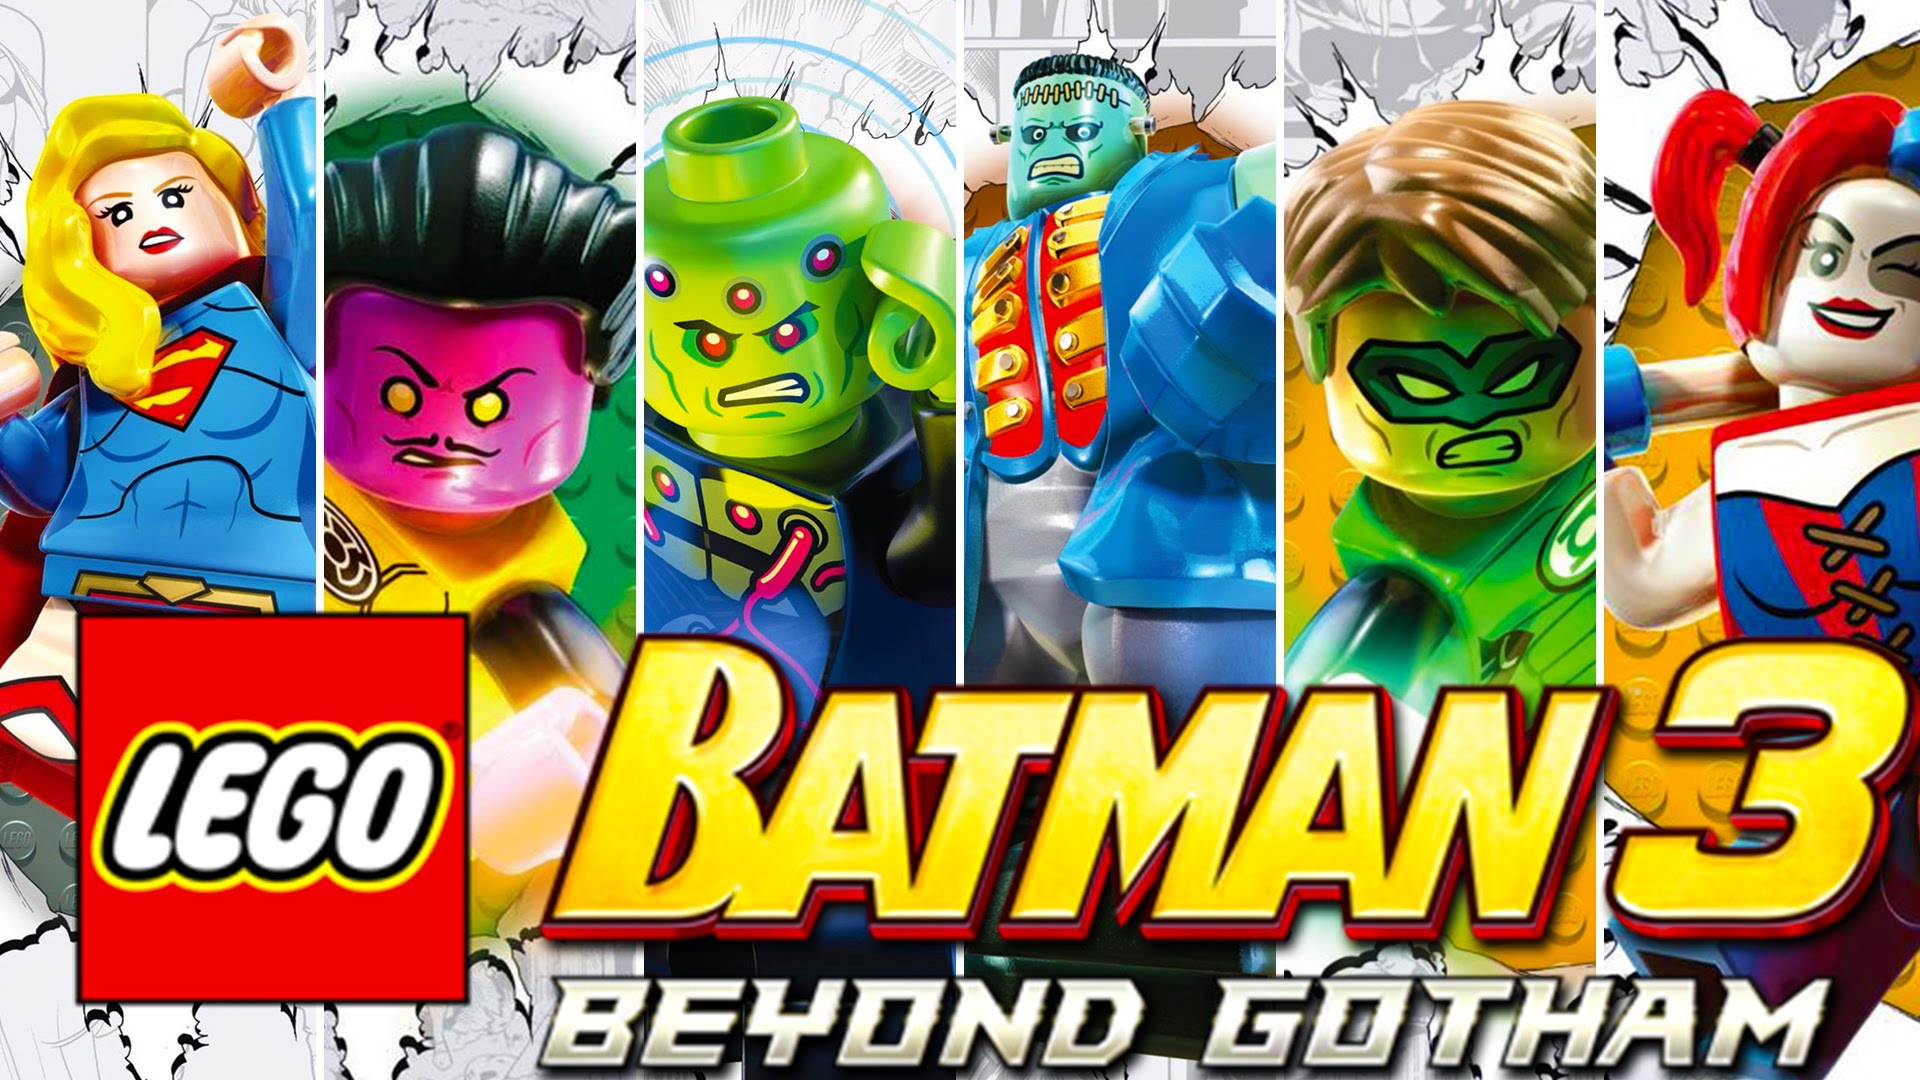 2 lego batman 3: beyond gotham hd wallpapers | background images